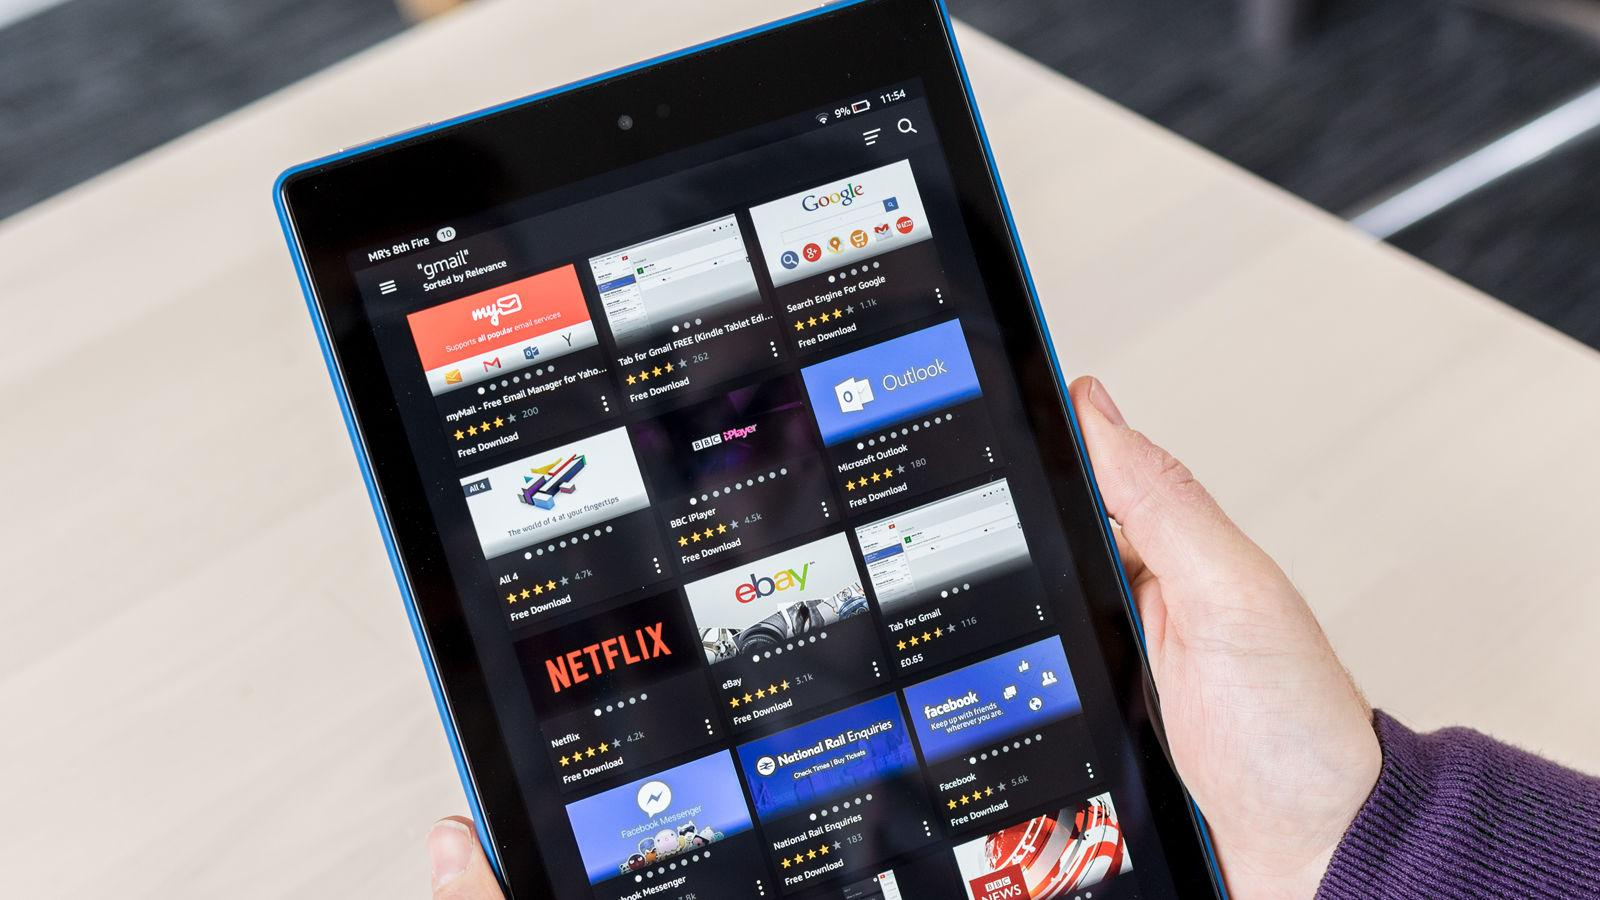 Видеообзор Amazon Kindle Fire HD